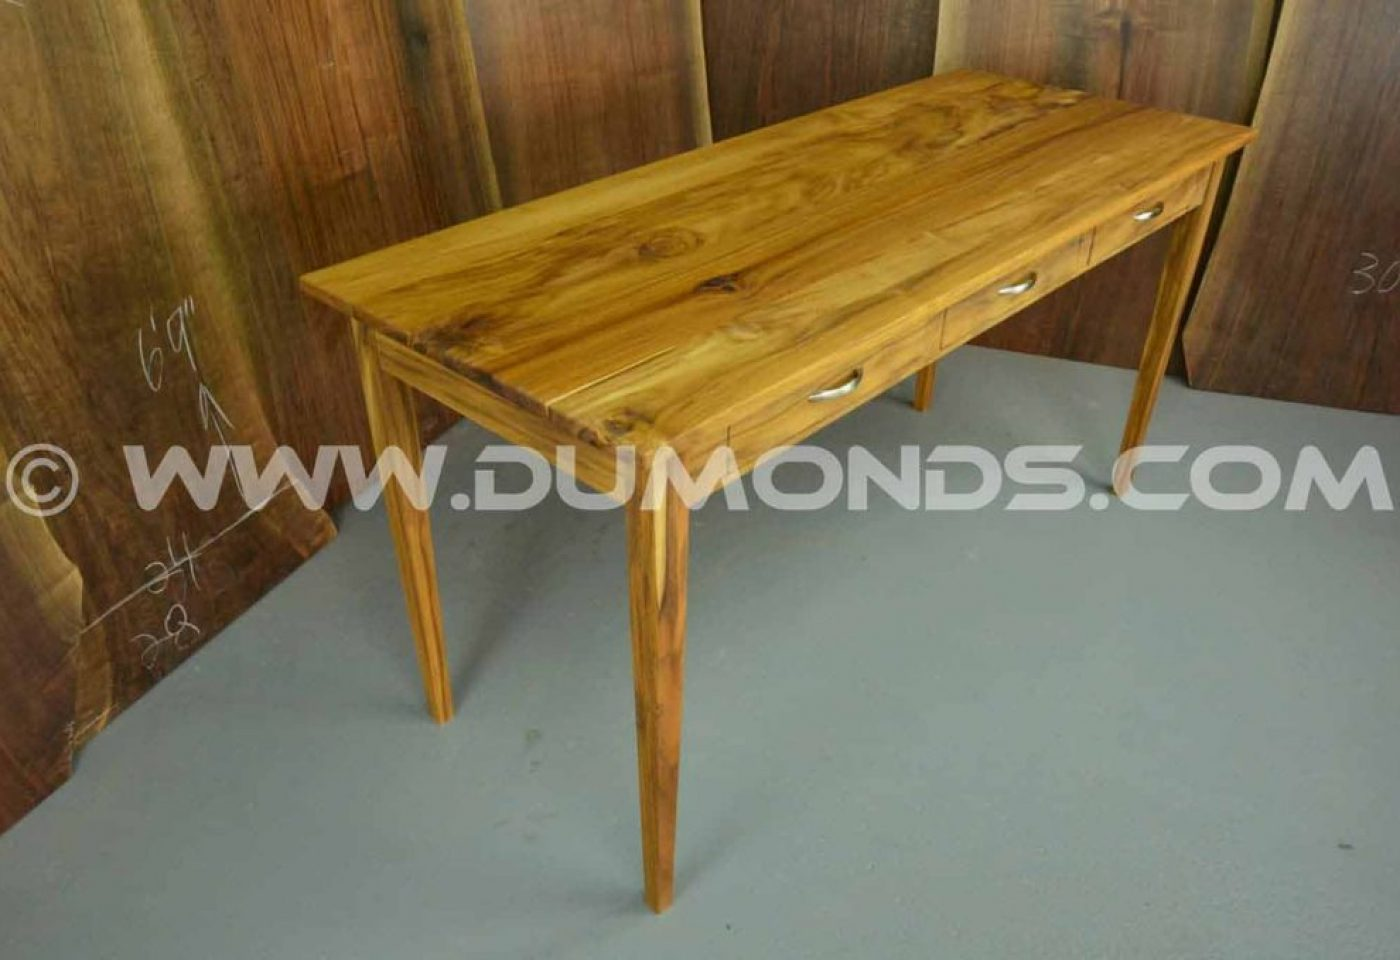 TEAK DESK WITH TAPERED LEGS….THESE LEGS